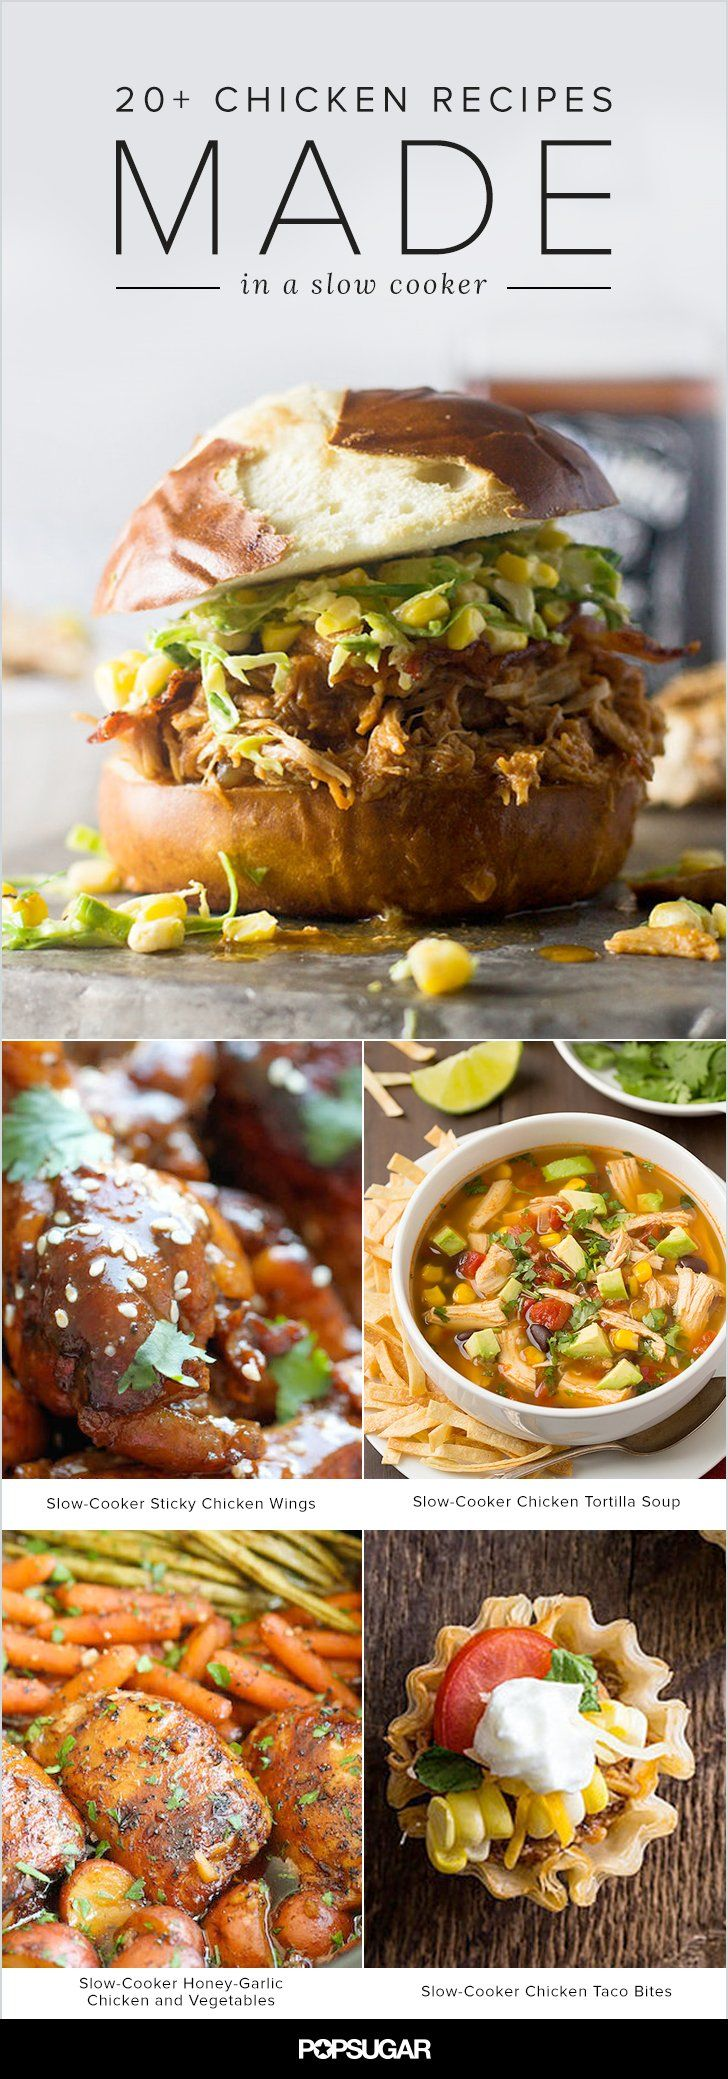 Fast and easy crowd pleasing recipes